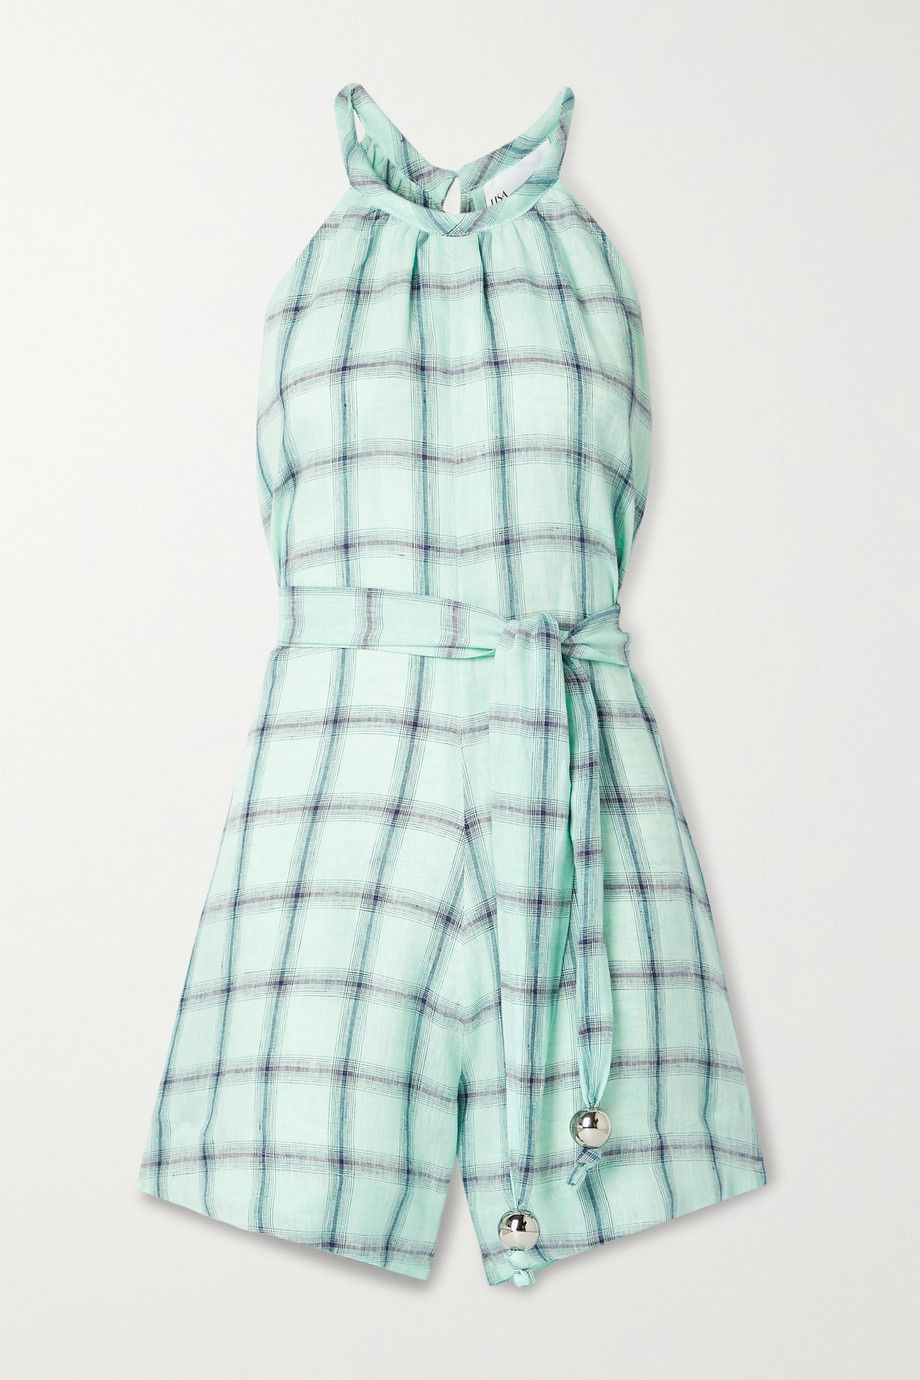 LISA MARIE FERNANDEZ + NET SUSTAIN belted checked linen playsuit